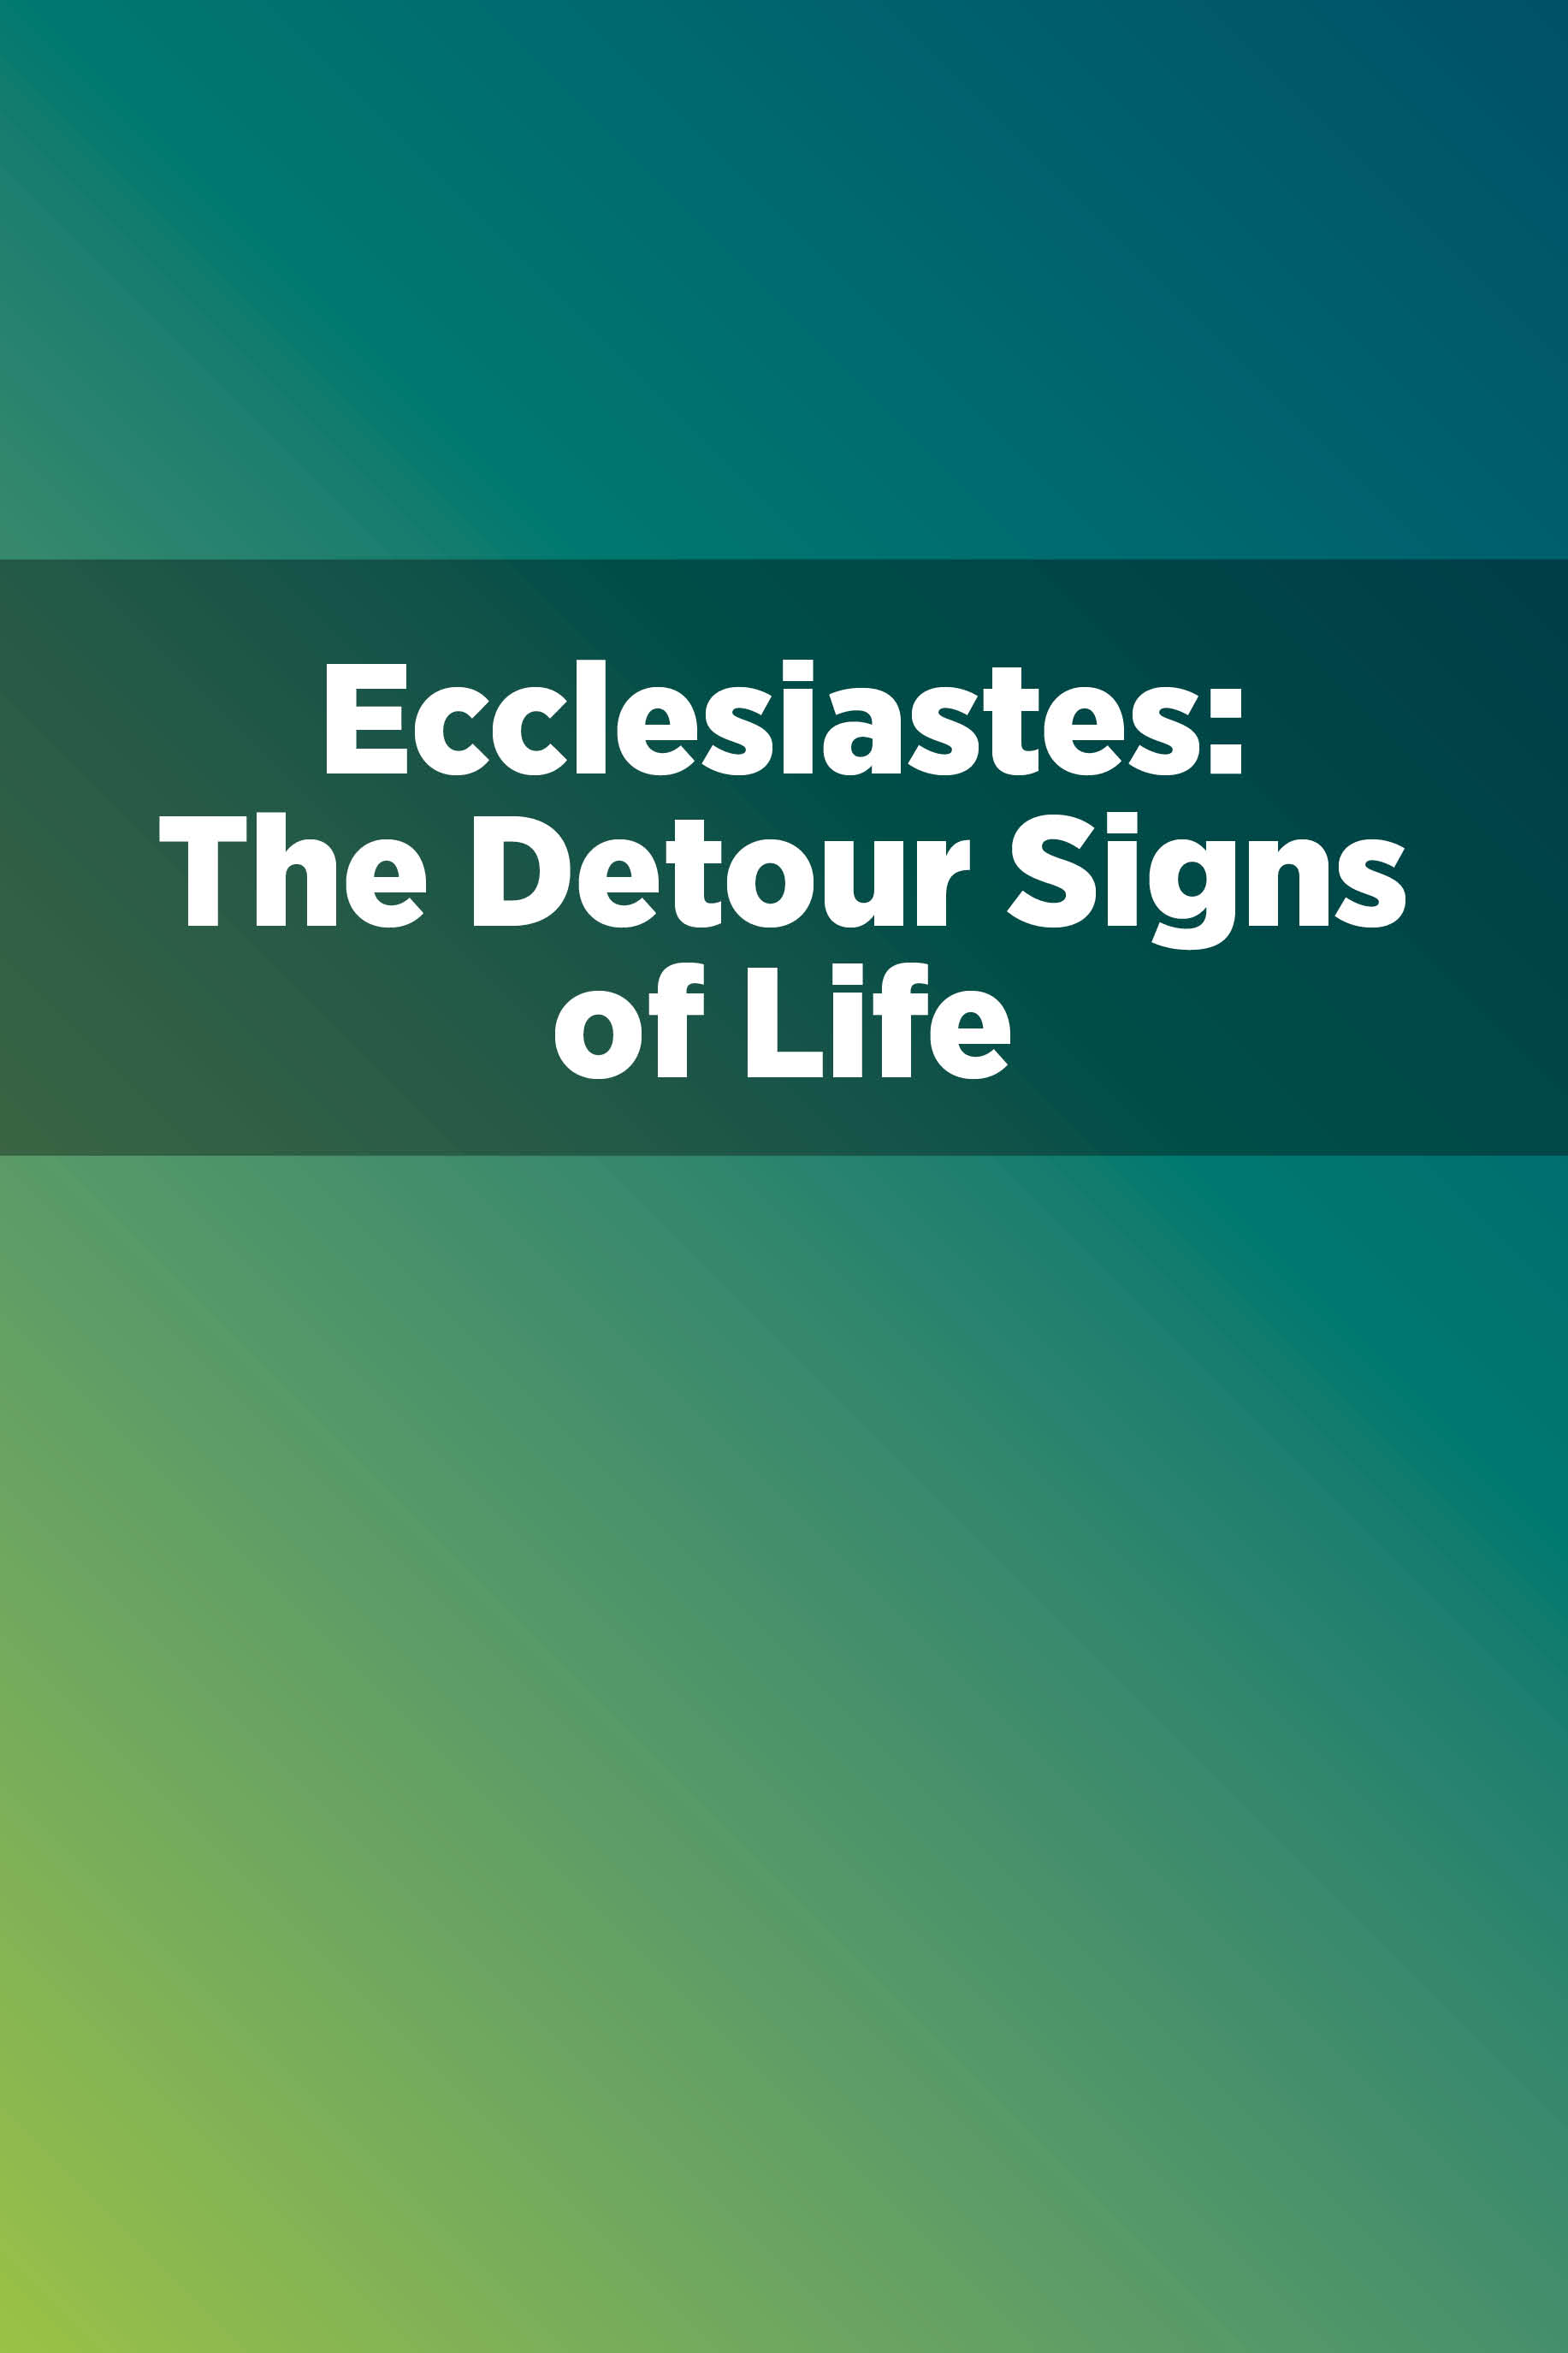 Ecclesiastes: The Detour Signs of Life